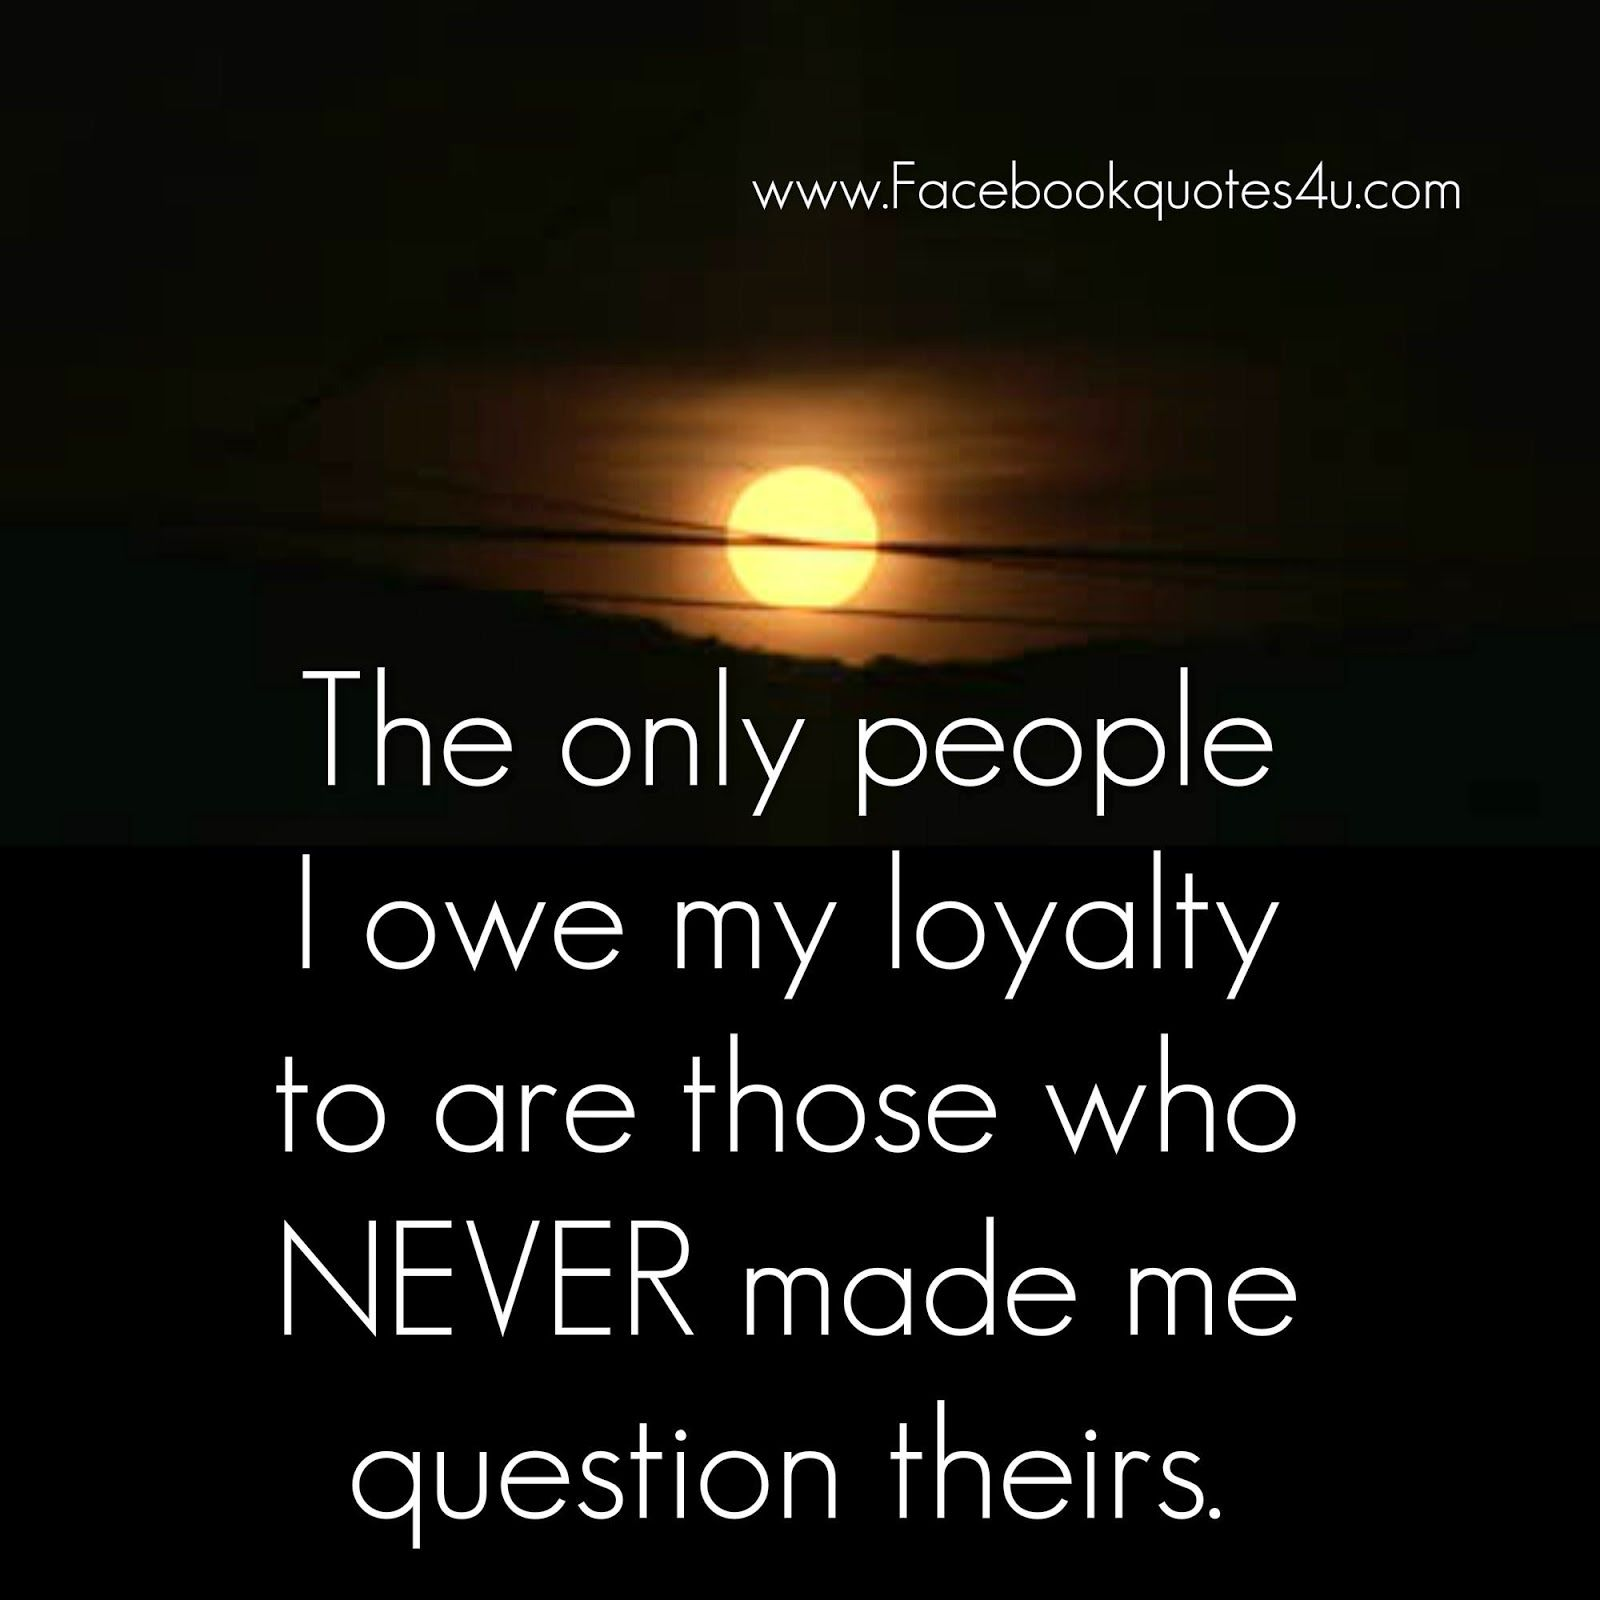 The Only People You Owe Your Loyalty Facebook Quotes Quotes Lessons Learned